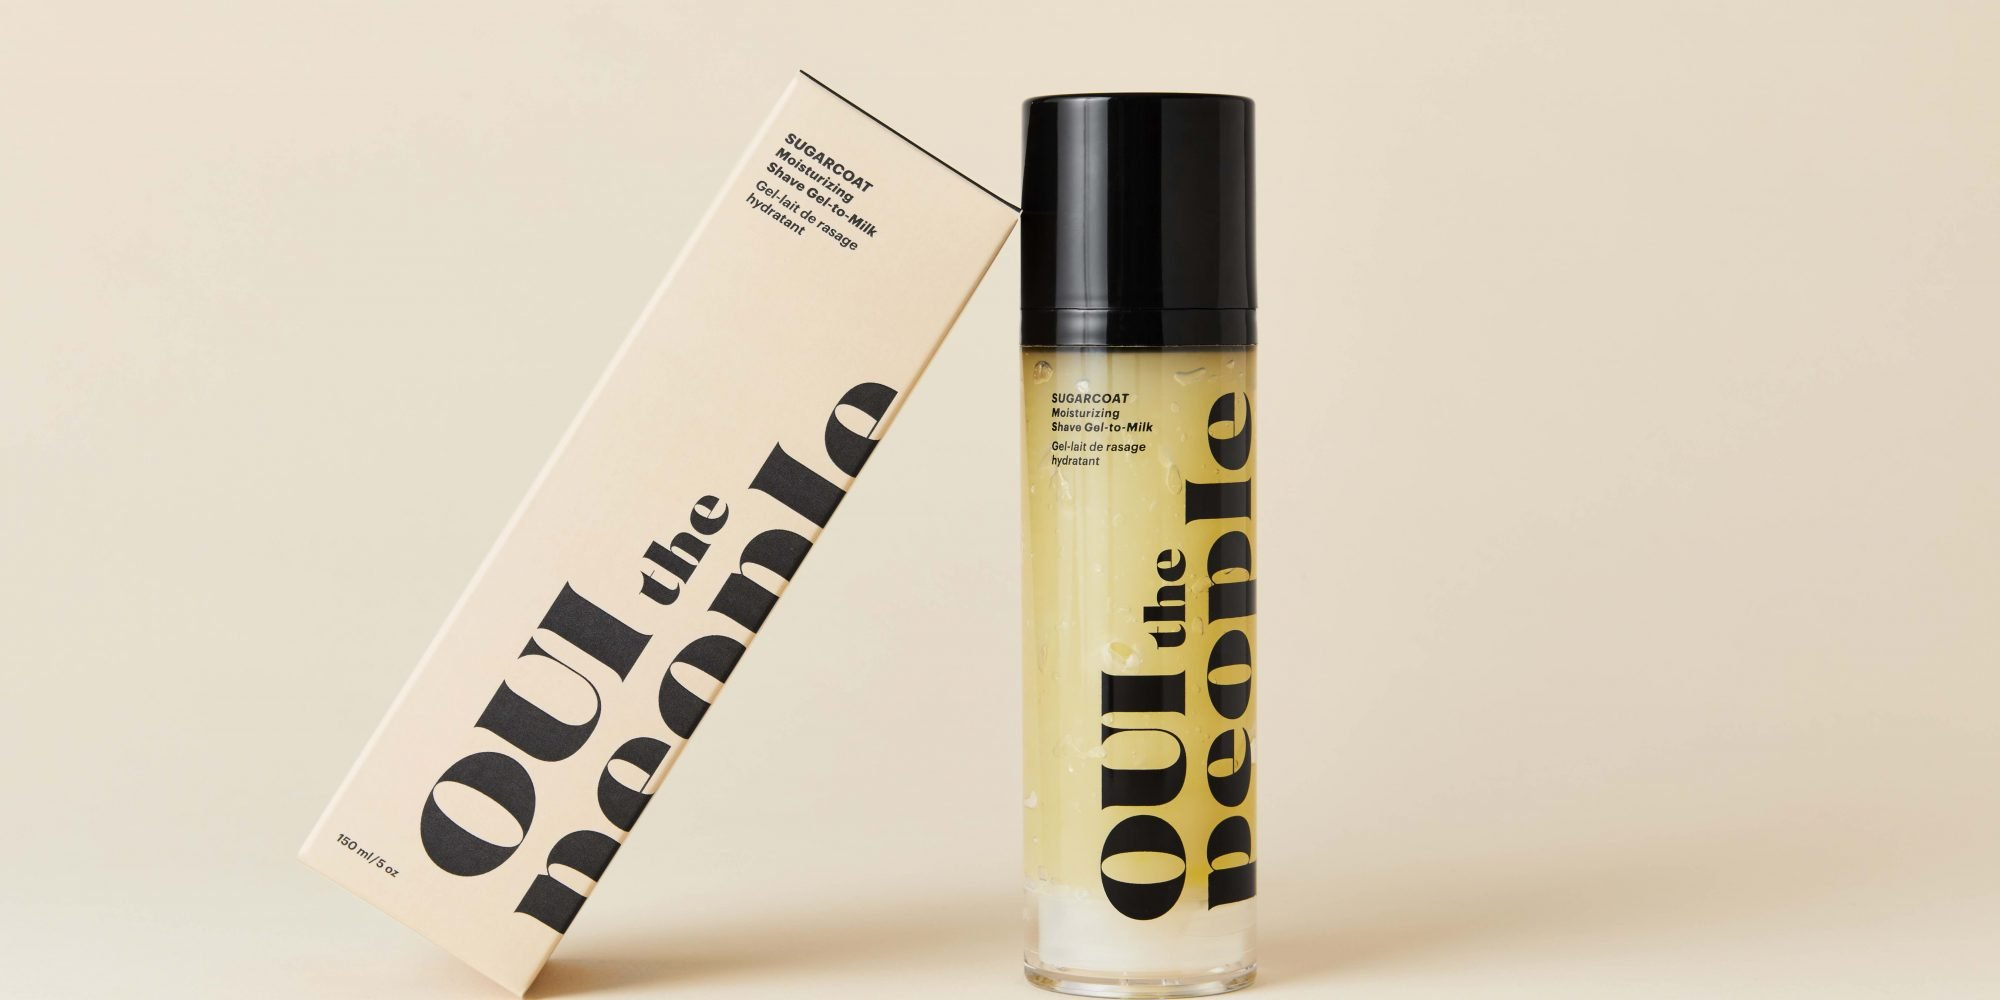 Why Oui Shave Has Become Oui The People